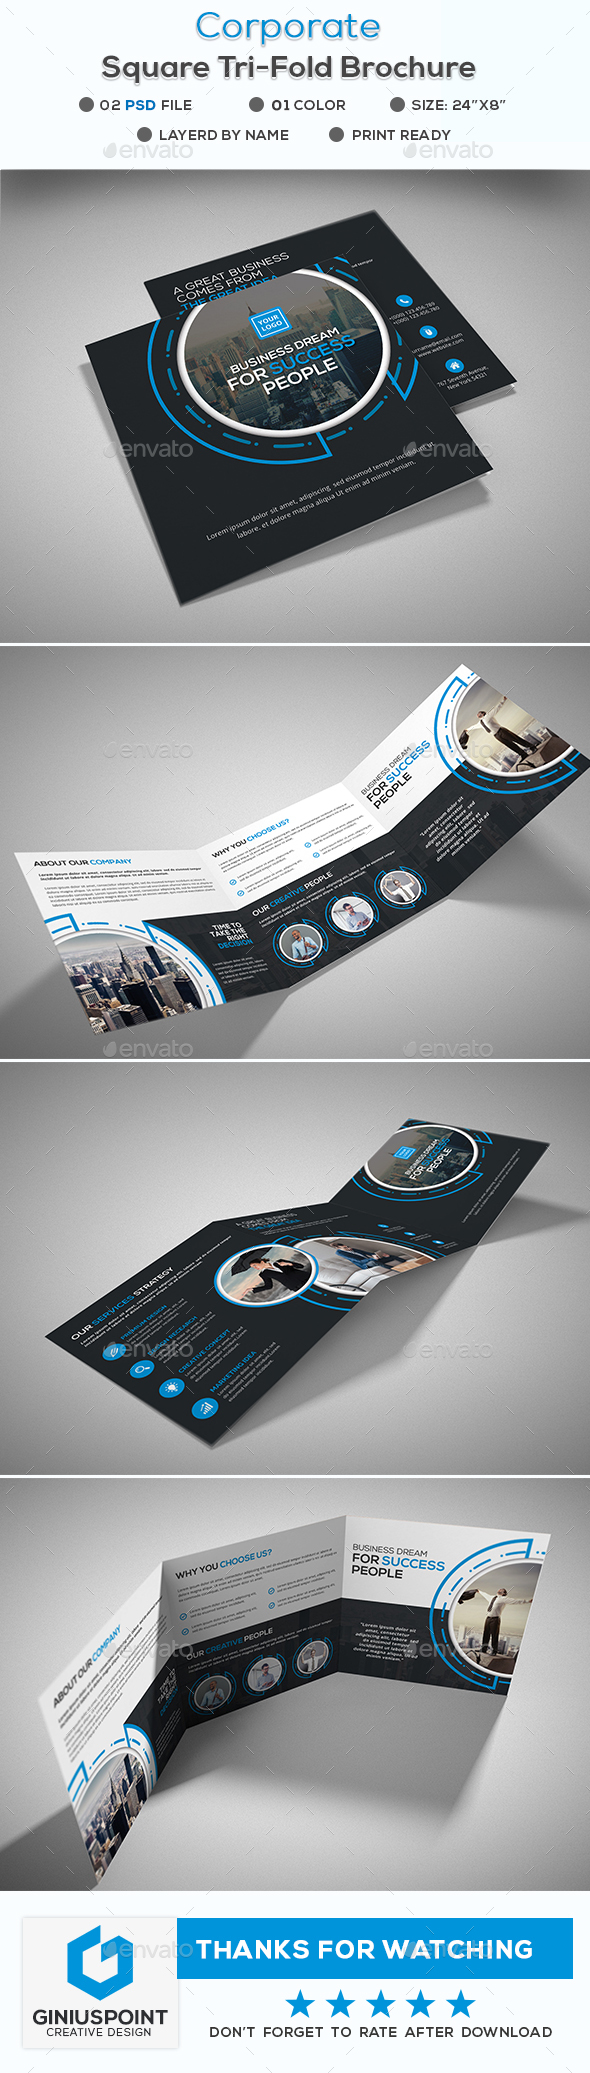 Corporate Square Tri-Fold Brochure - Corporate Brochures